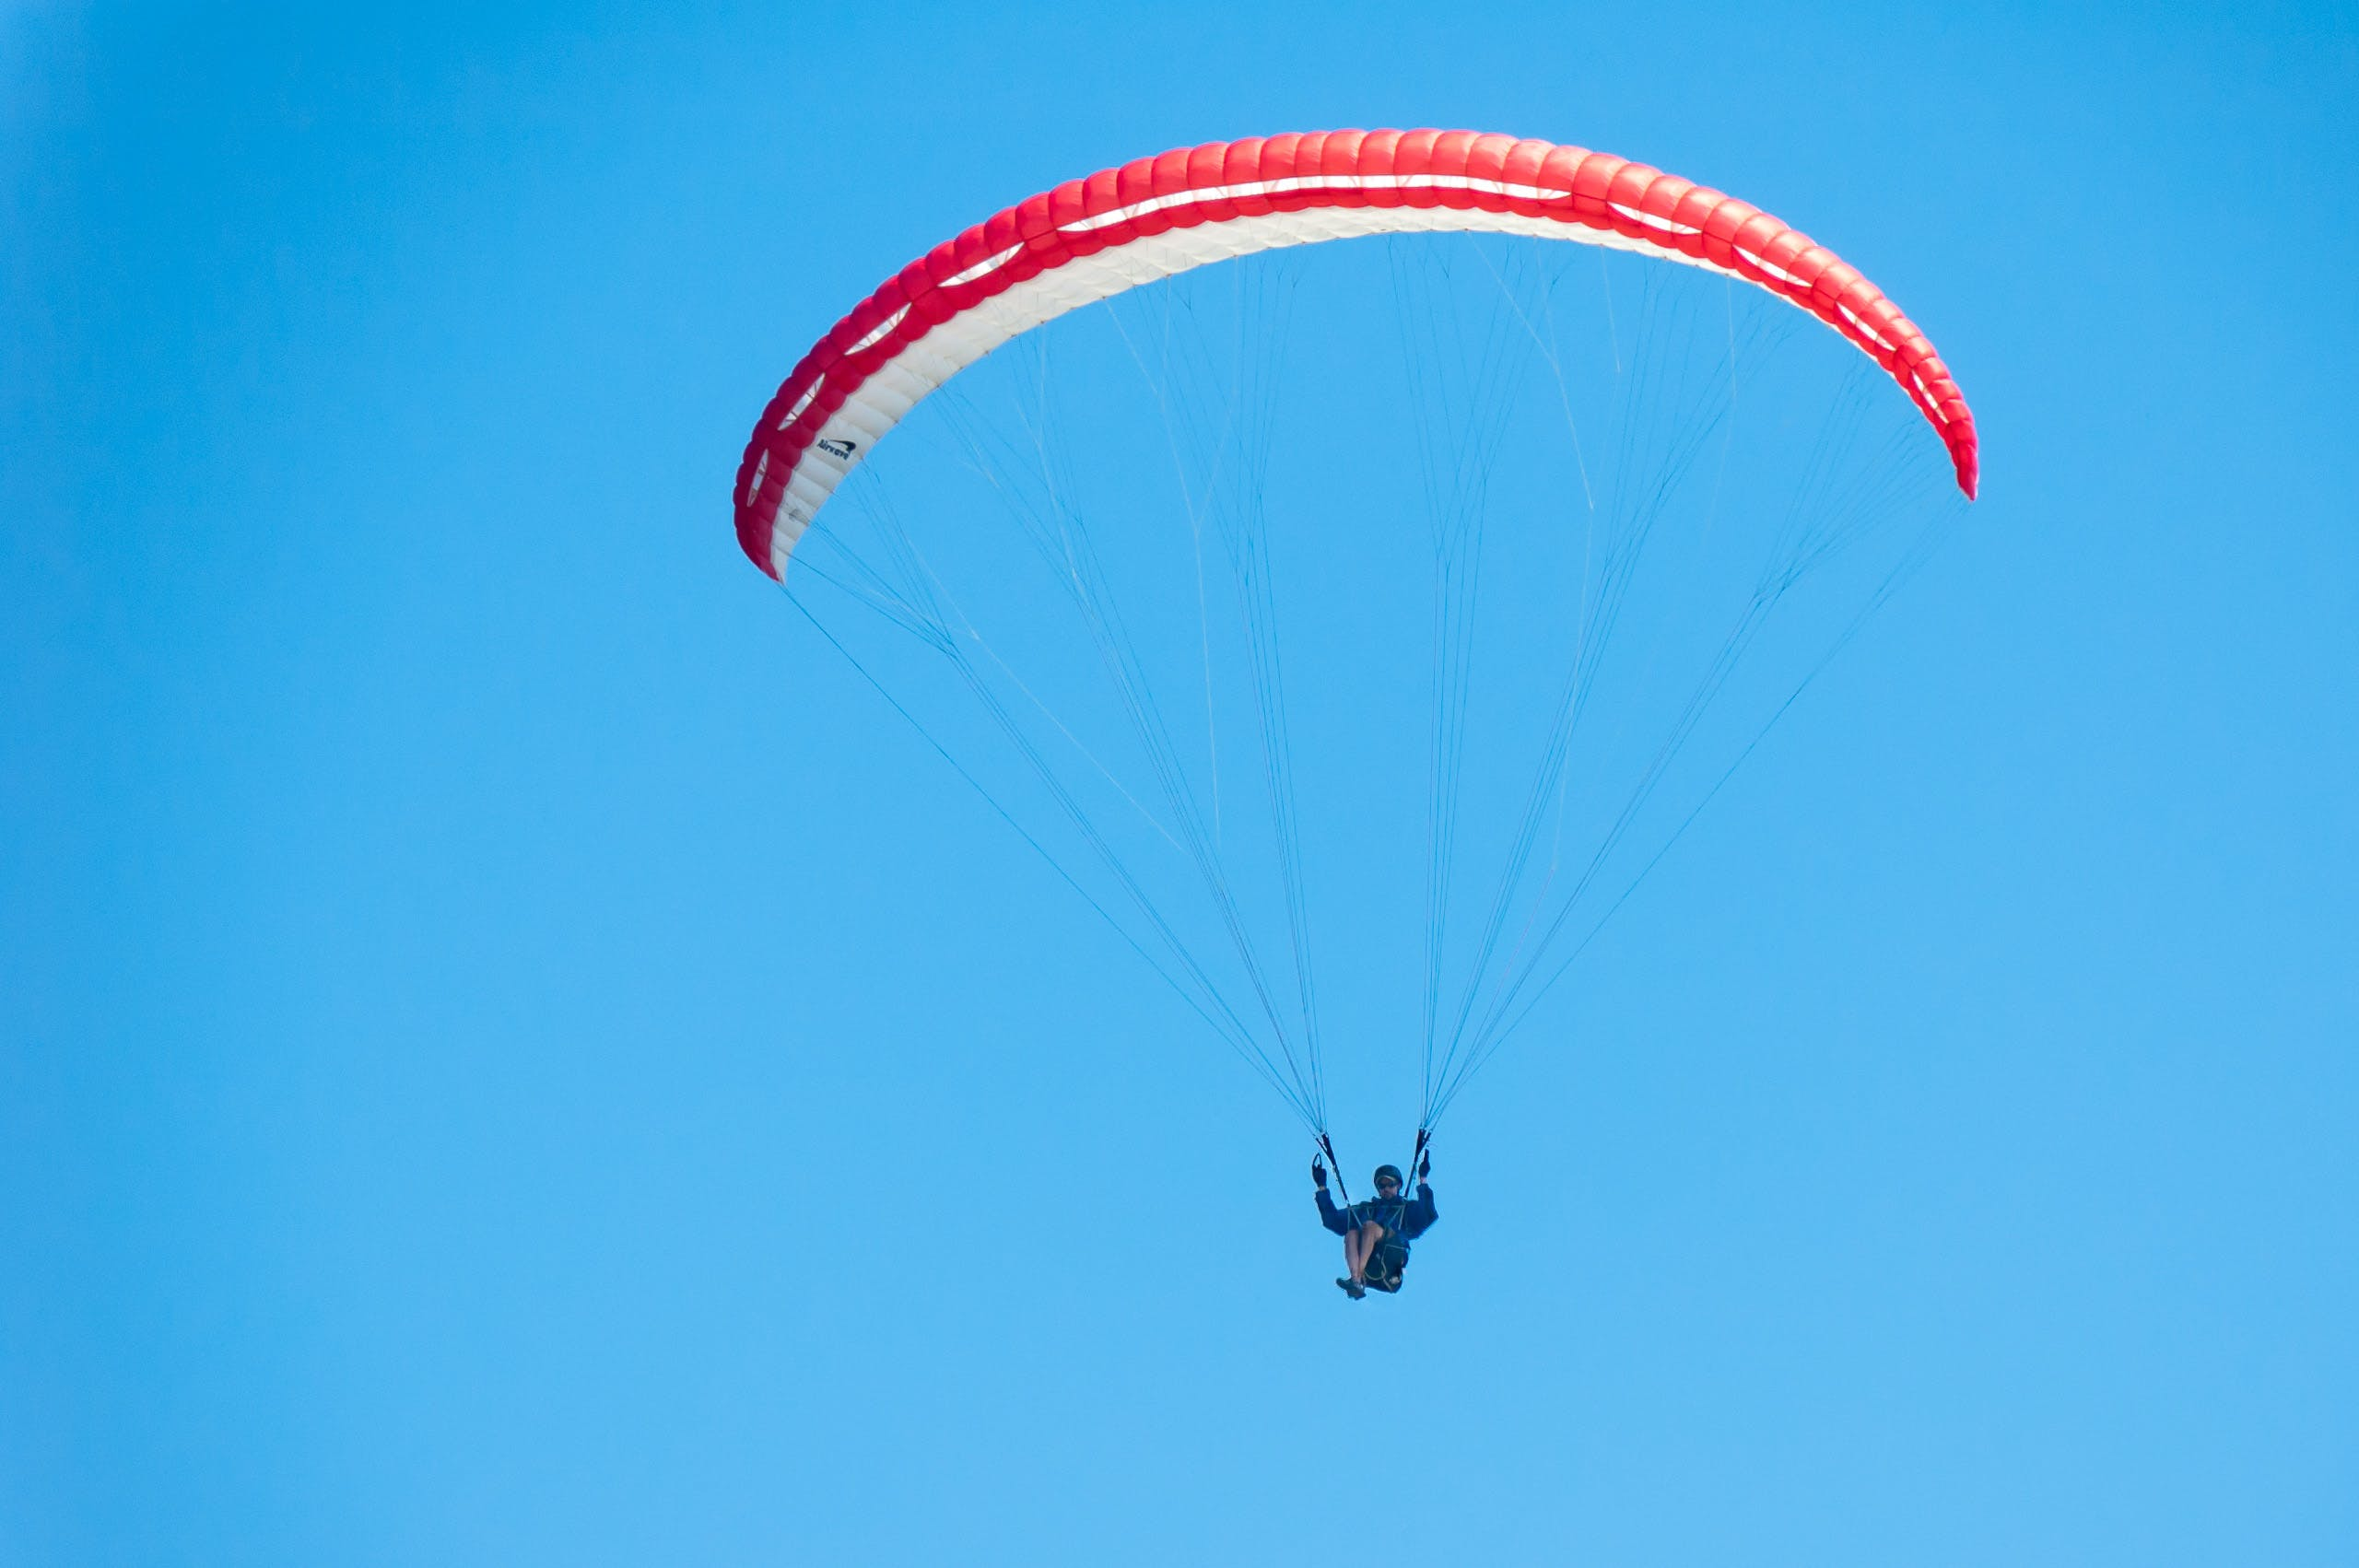 Free stock photo of blue sky, no clouds, paraglider, person